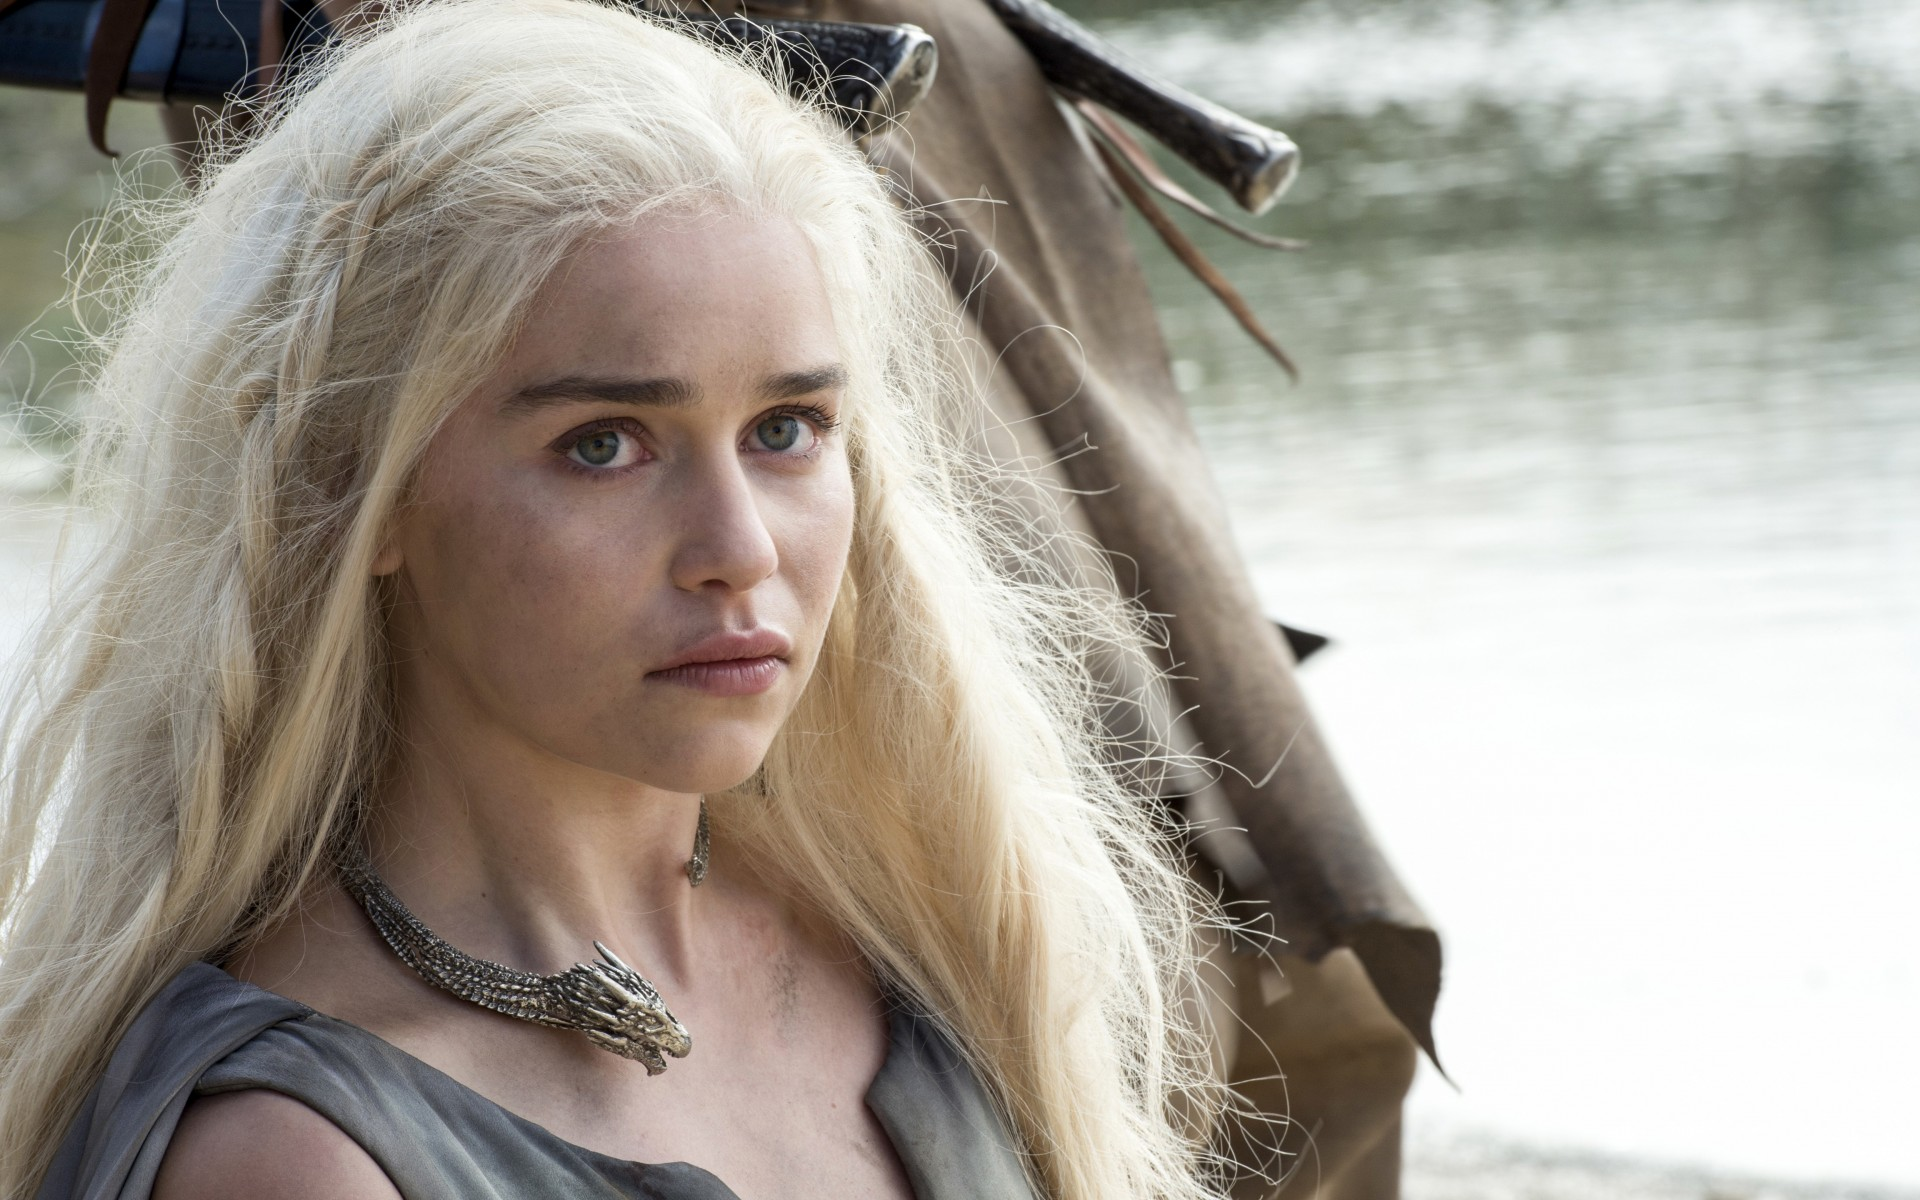 daenerys-targaryen-game-of-thrones-le-trone-de-fer